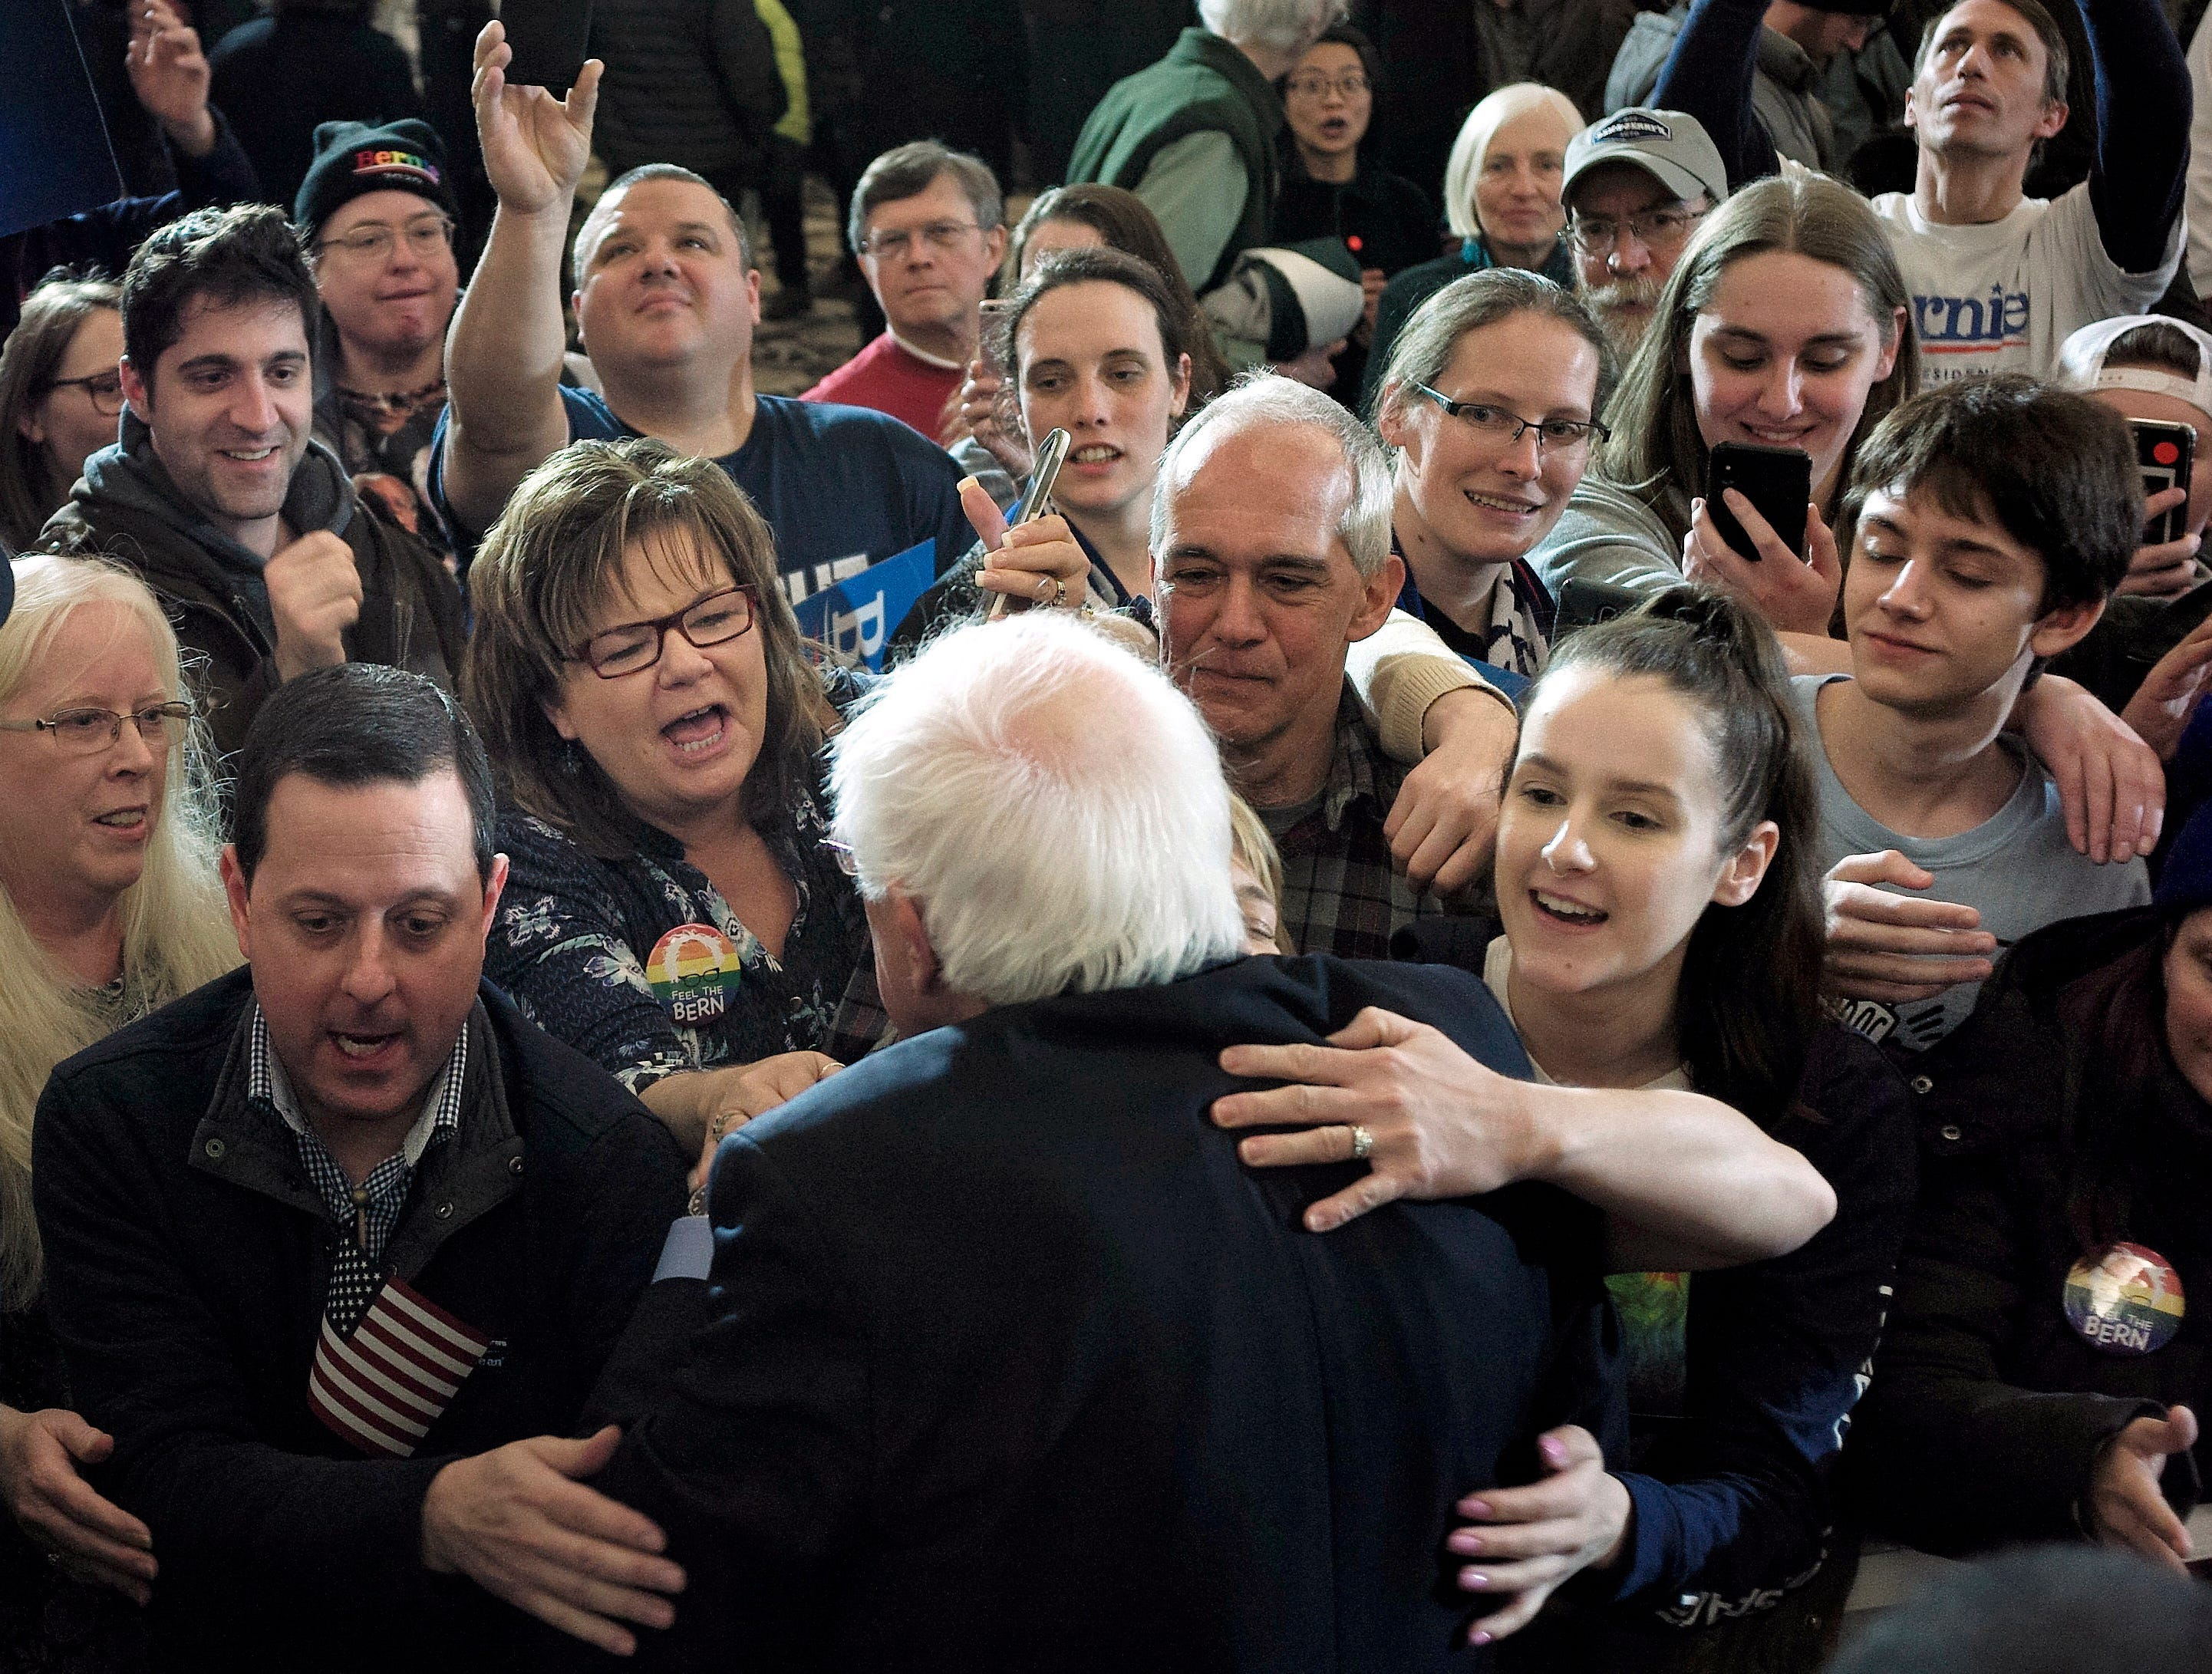 2020 Democratic presidential candidate Sen. Bernie Sanders, front, greets people in the audience after addressing a rally during a campaign stop Sunday, March 10, 2019, in Concord, N.H.